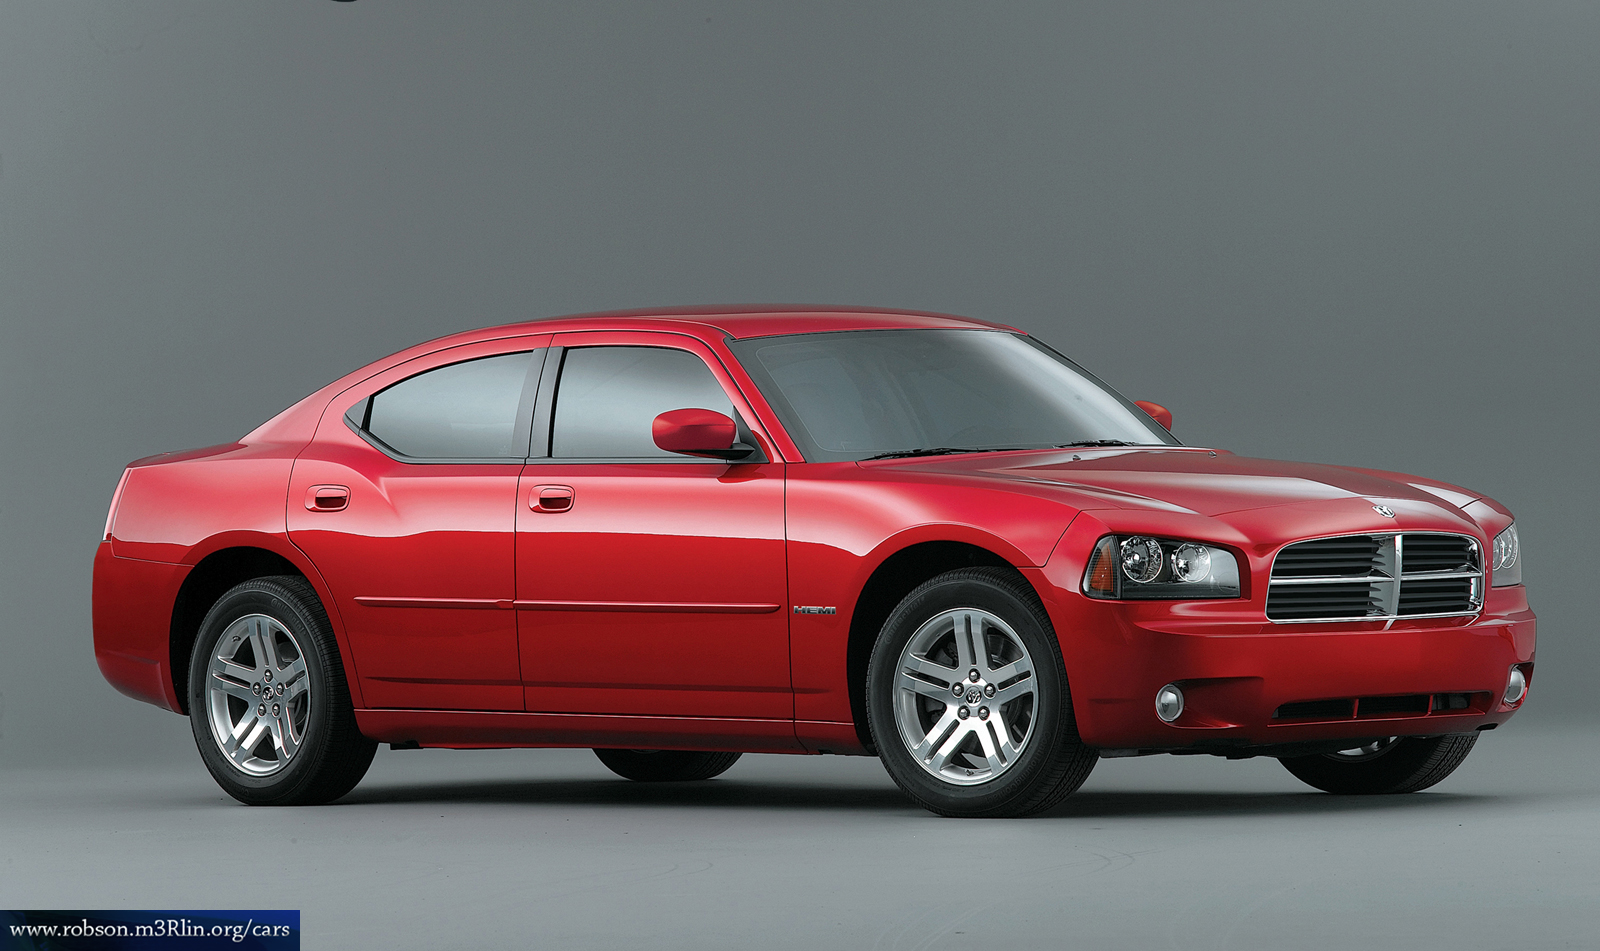 2008 Dodge Charger Image 19